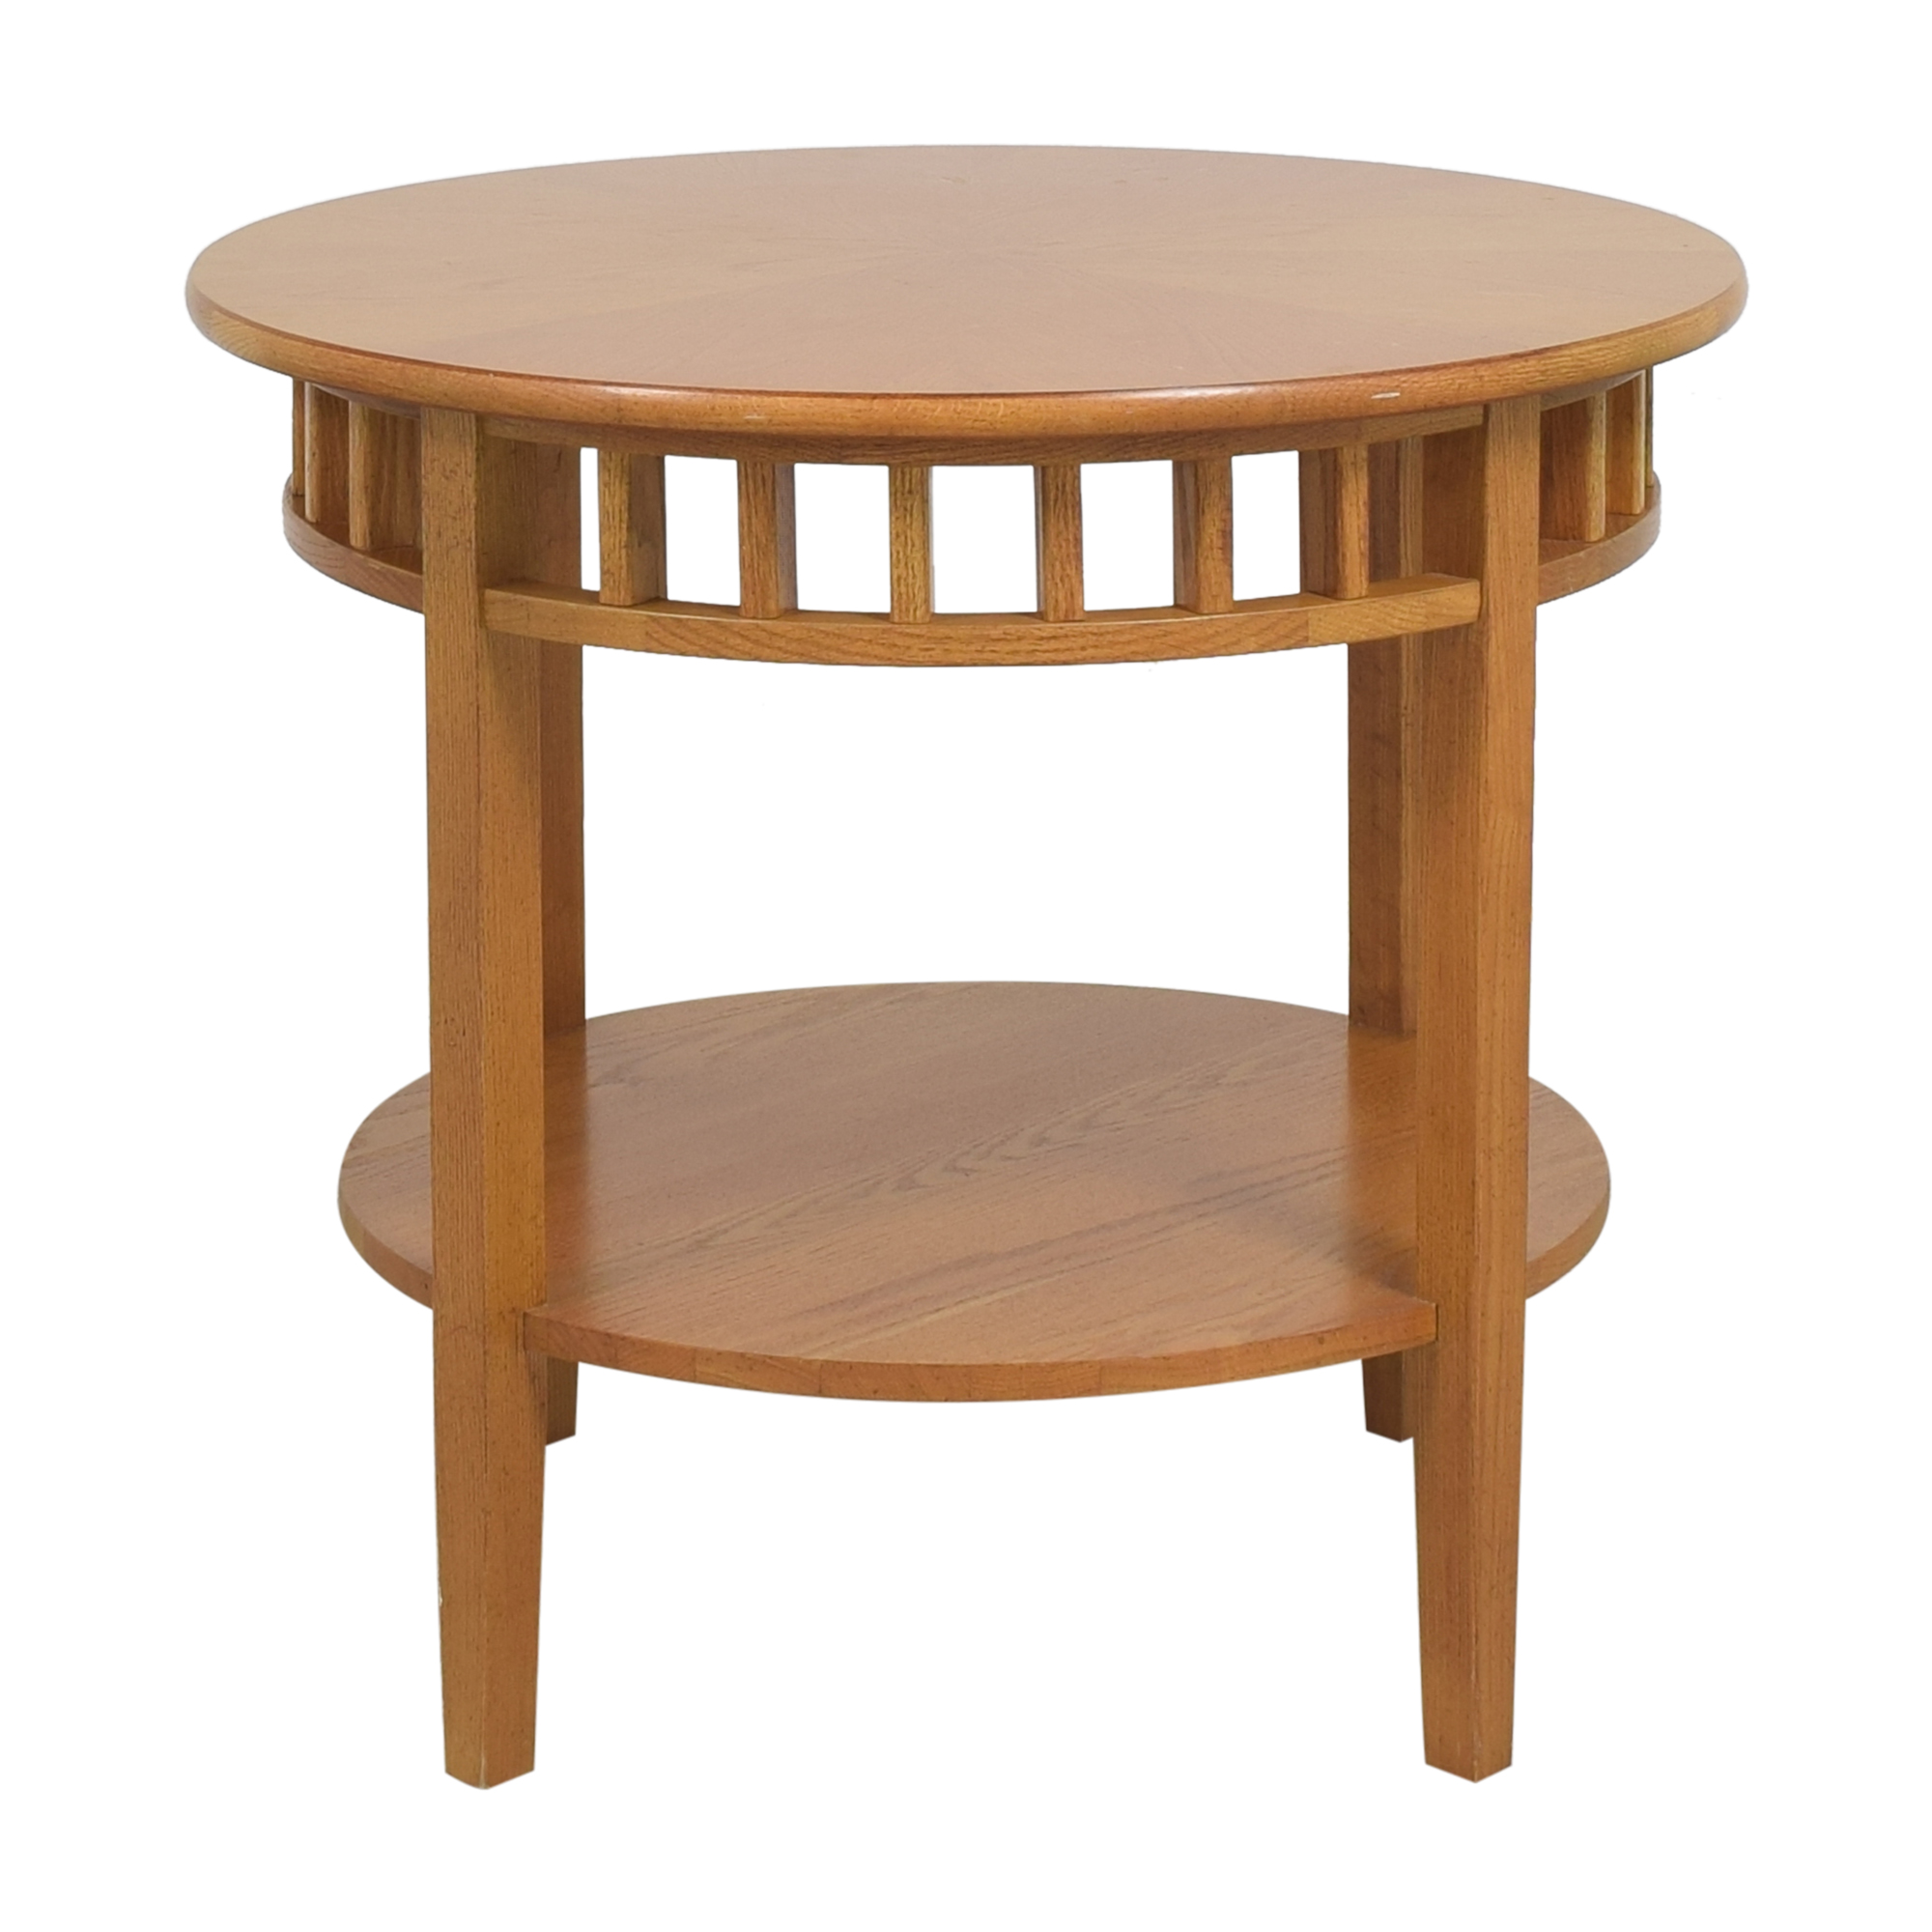 Stanley Furniture Round Accent Table / Tables